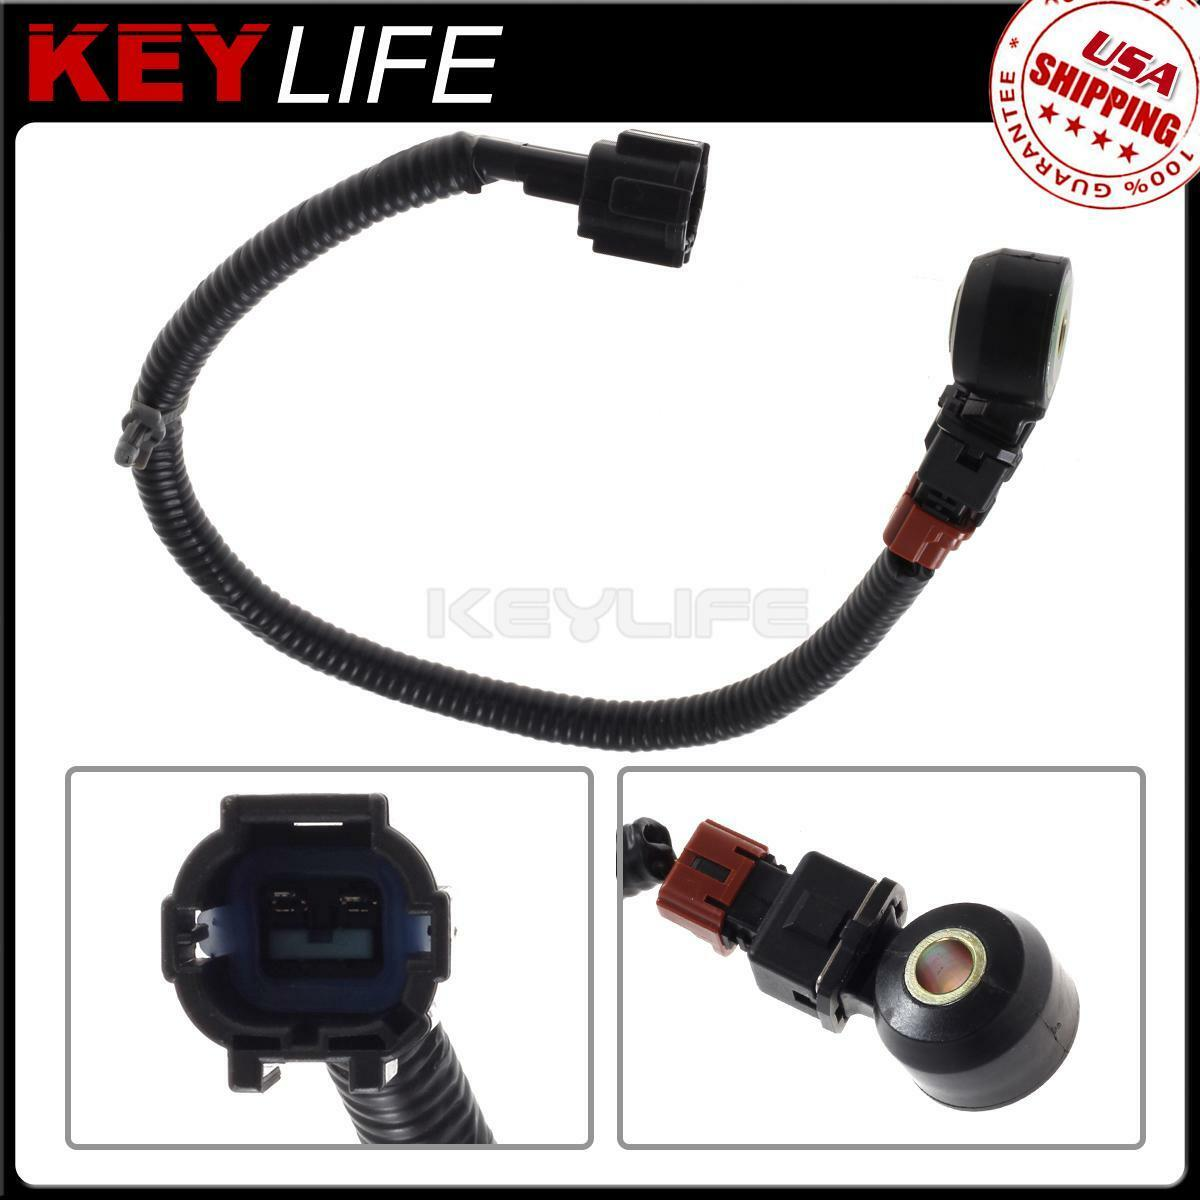 Engine Knock Sensor With Wiring Harness 2206030p00 For 90 2000 1996 Infiniti I30 1 Of 6only 3 Available